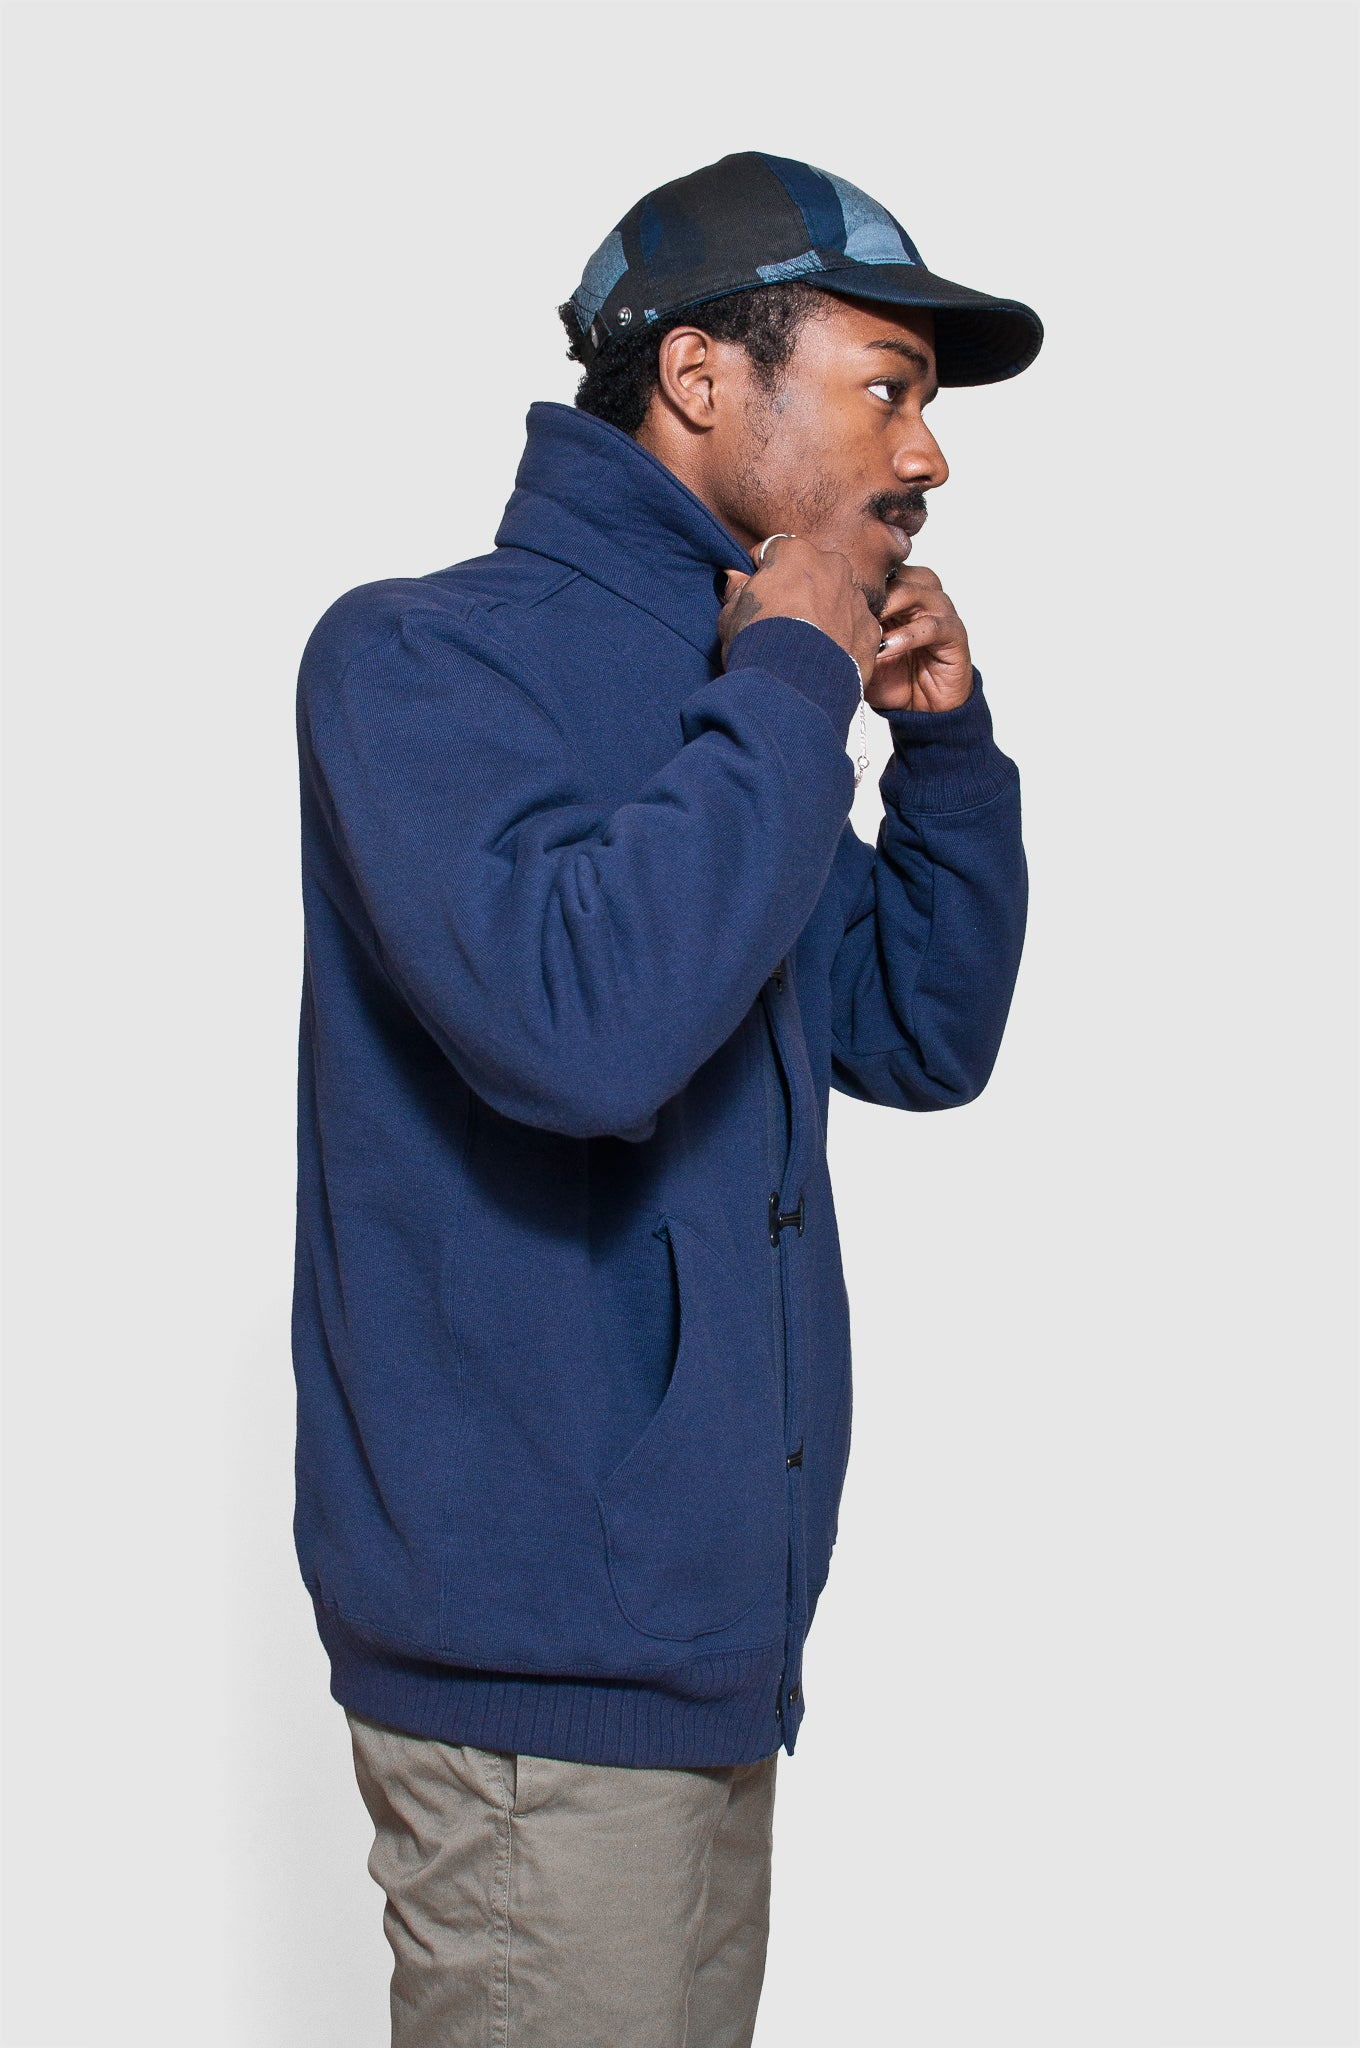 a4c92e1b5a5a56 ... US Clip Jacket Navy at shoplostfound Nigel Cabourn Mechanics Cap Camo  at shoplostfound Nigel Cabourn Big Shirt Henley Neck Grey at shoplostfound 1  ...